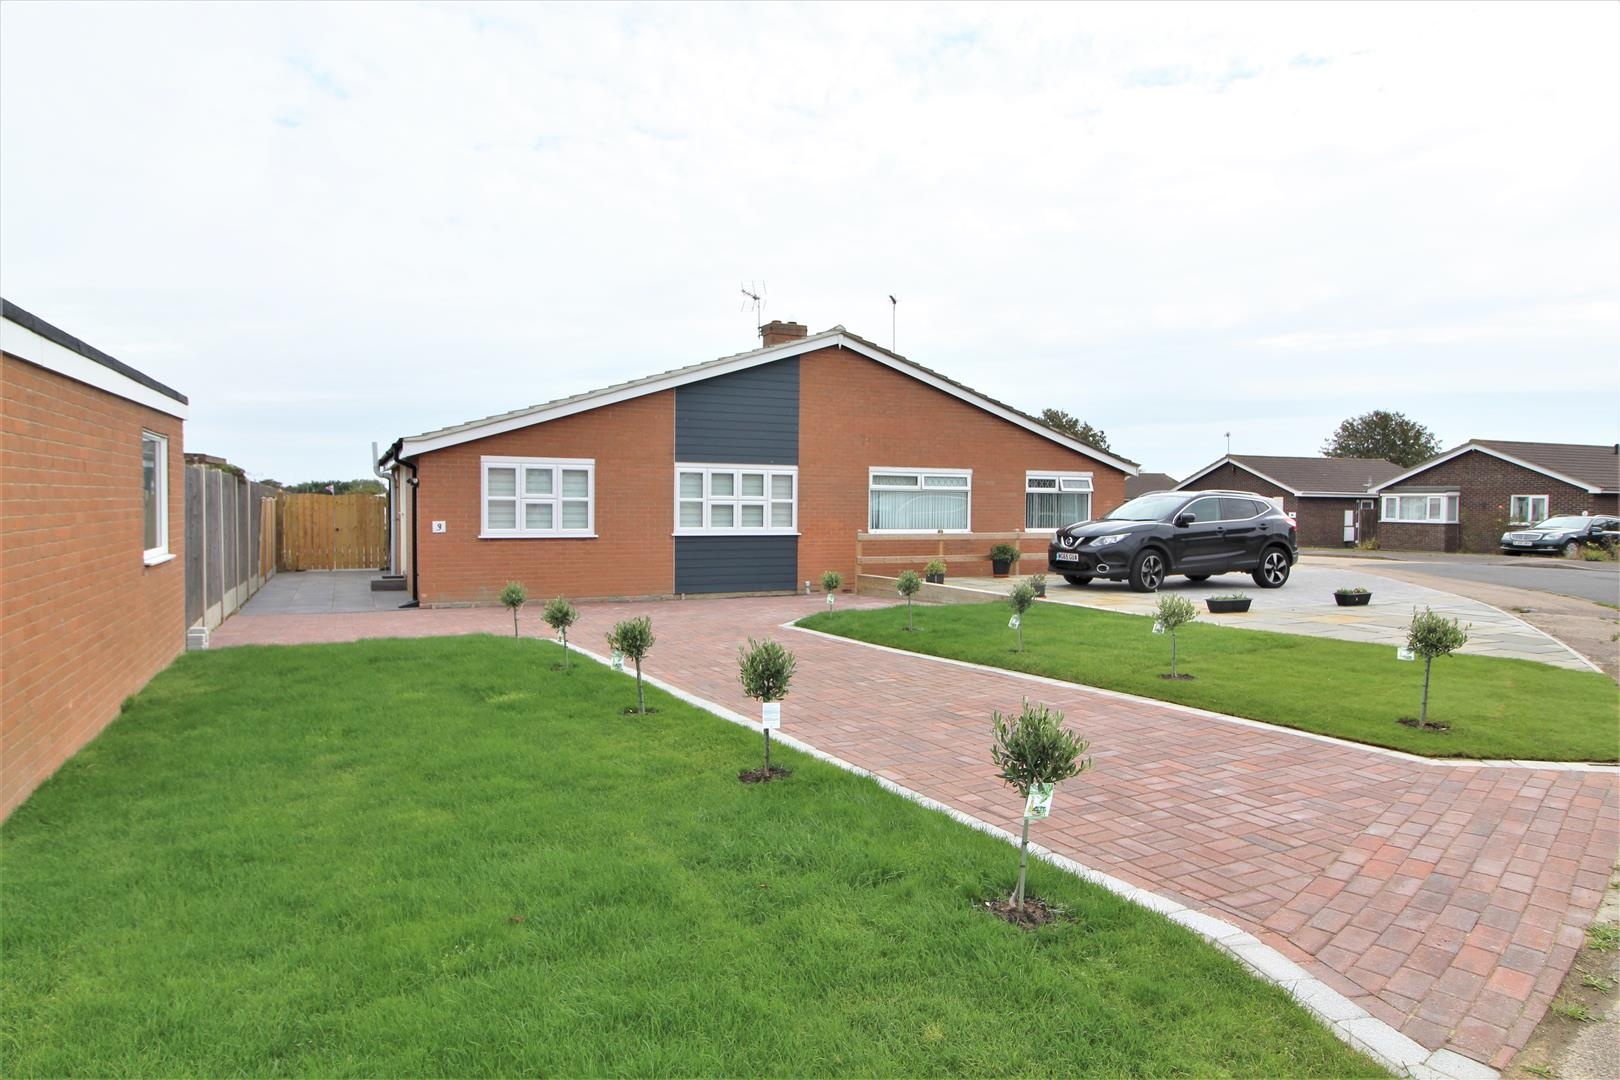 Philip Close, Frinton Homelands, Essex, CO14 8RZ